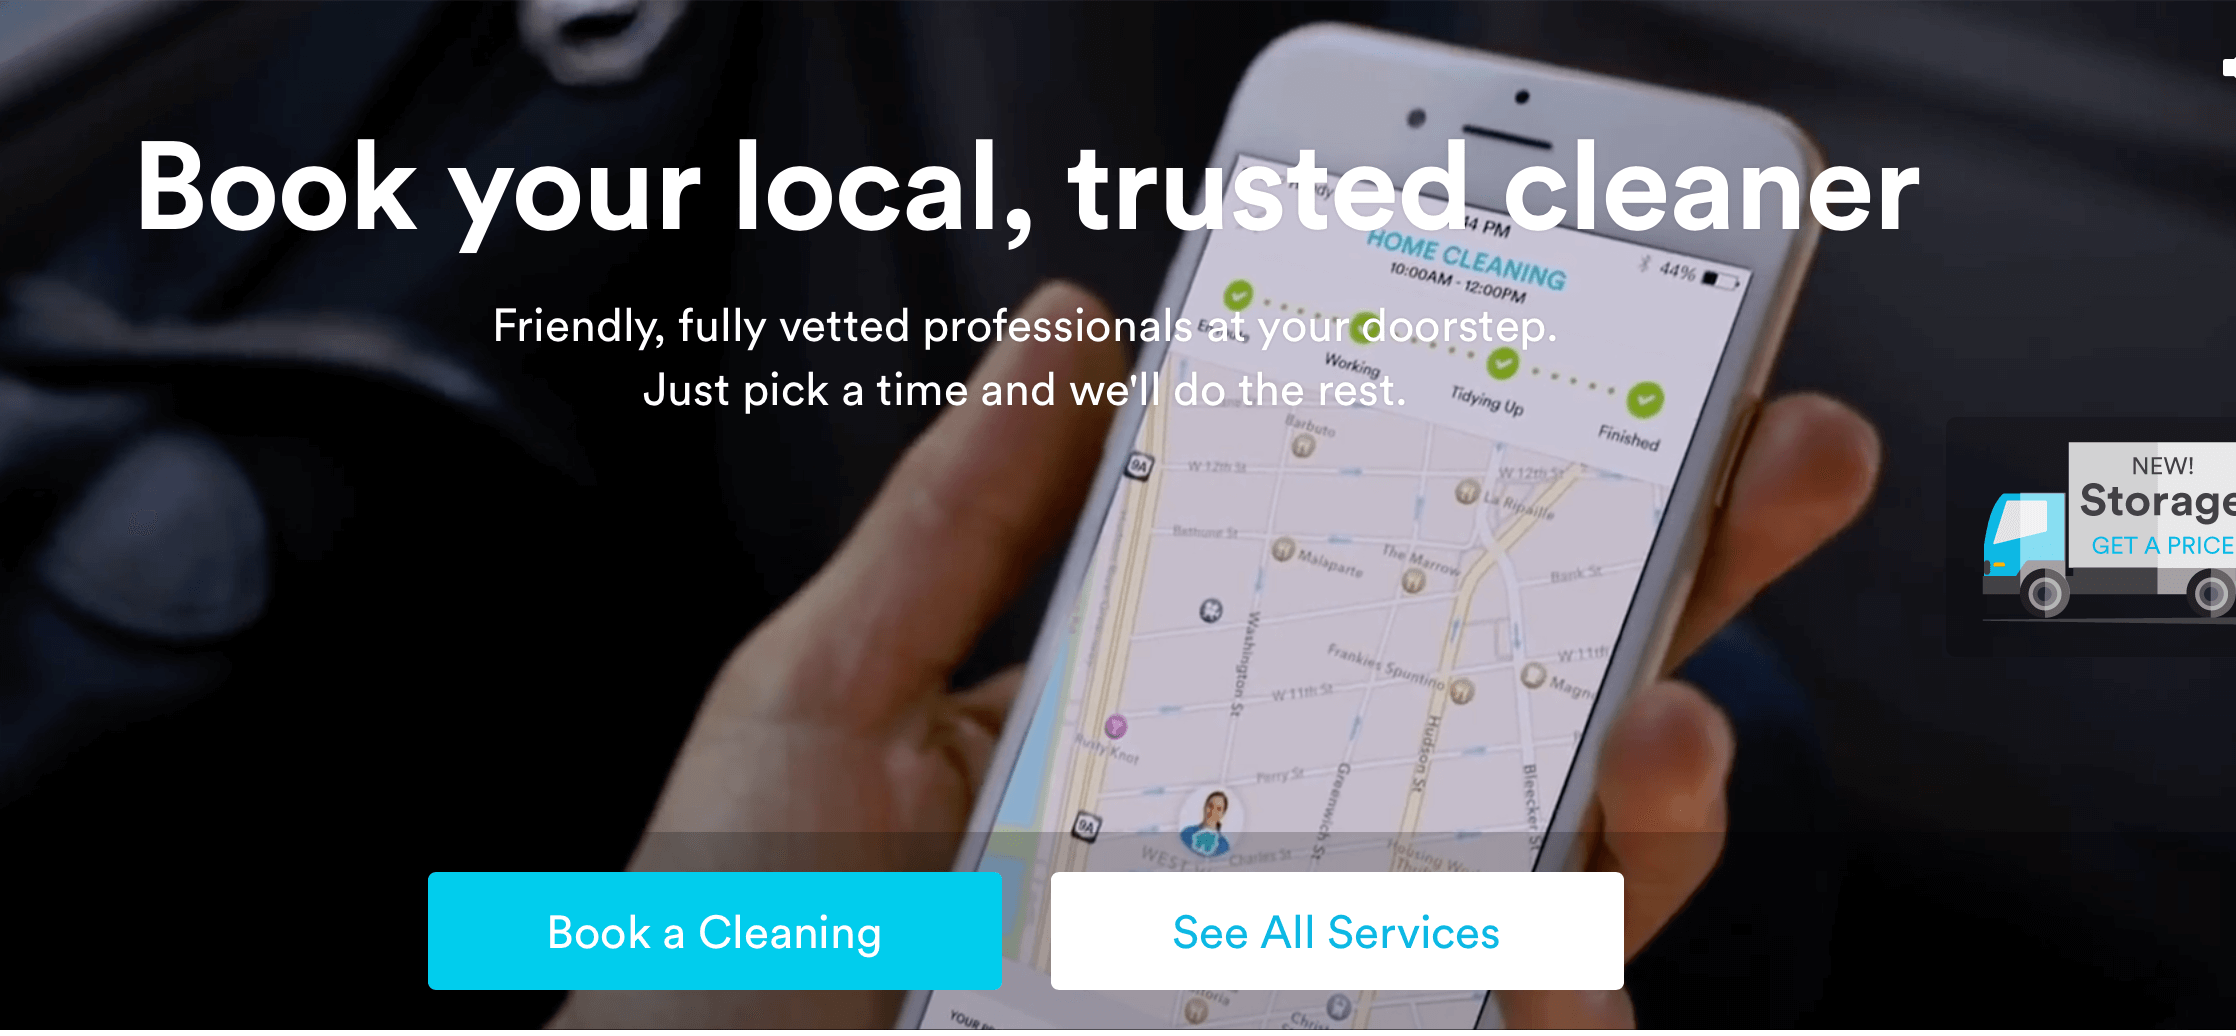 Book a cleaner app, Handy